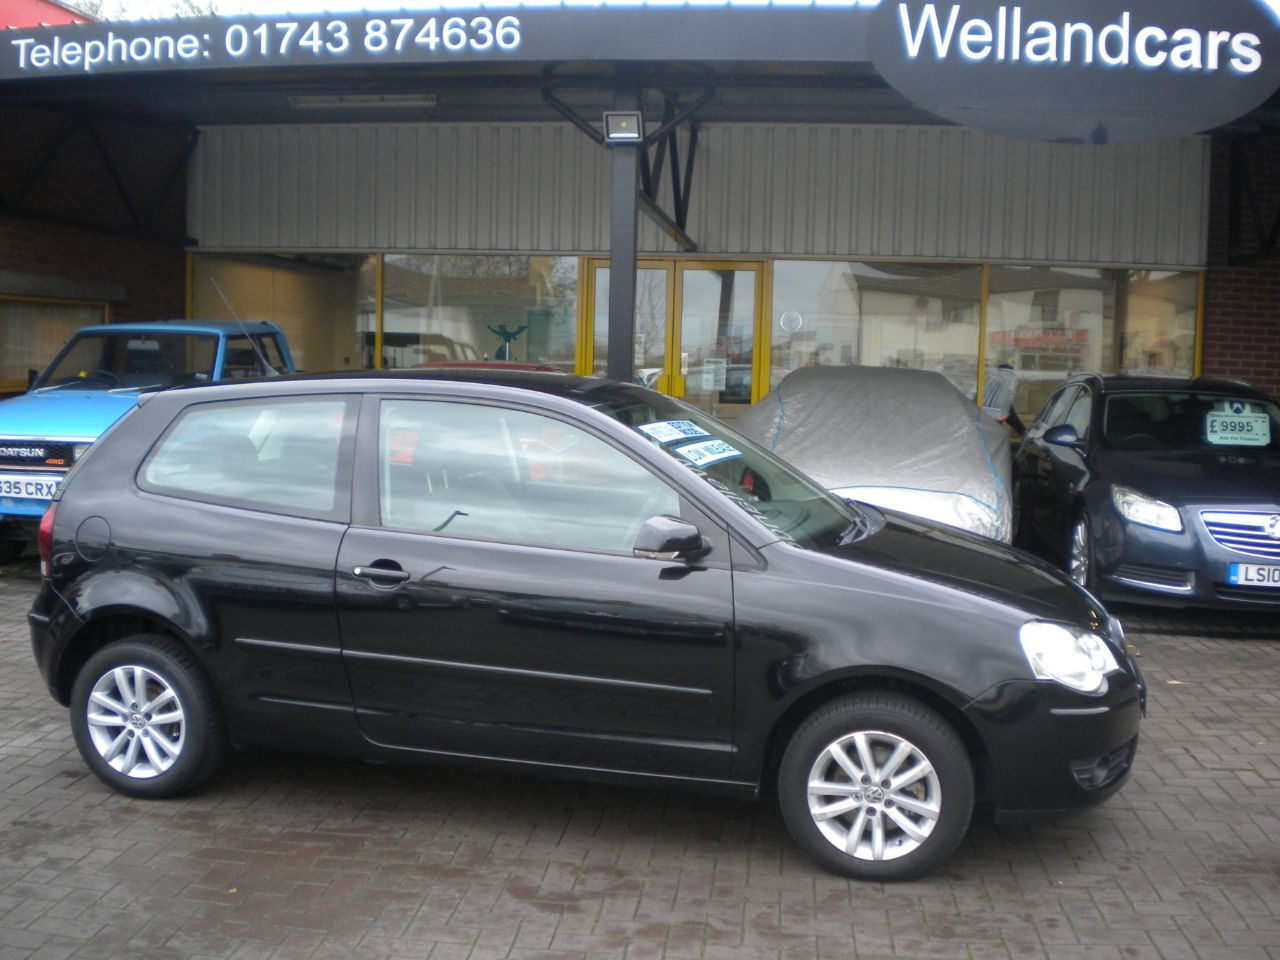 Volkswagen Polo 1.2 S 55 3dr, F/S/H, Economical to run, CD, Alloy Wheels, Air-conditioning Hatchback Petrol Black at Welland Cars Shrewsbury